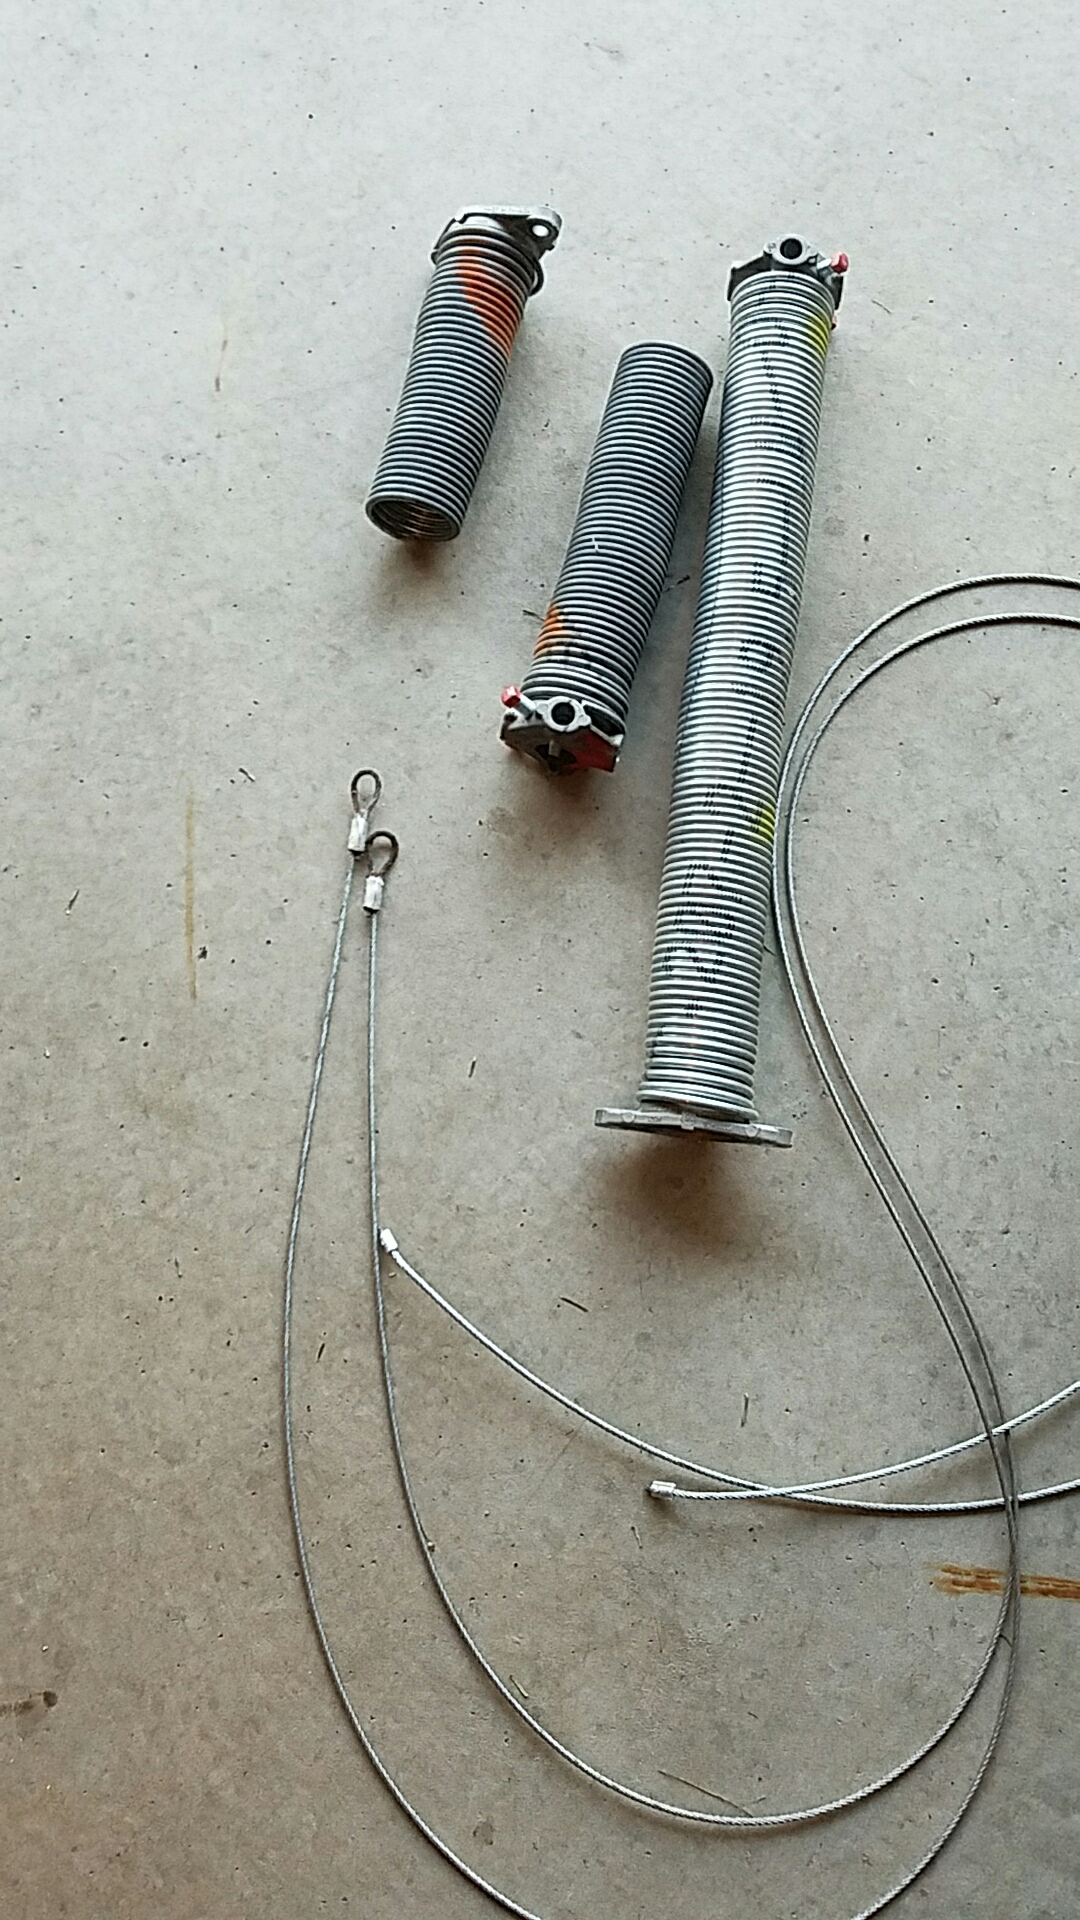 Lino Lakes, MN - Replaced garage door Springs and cables